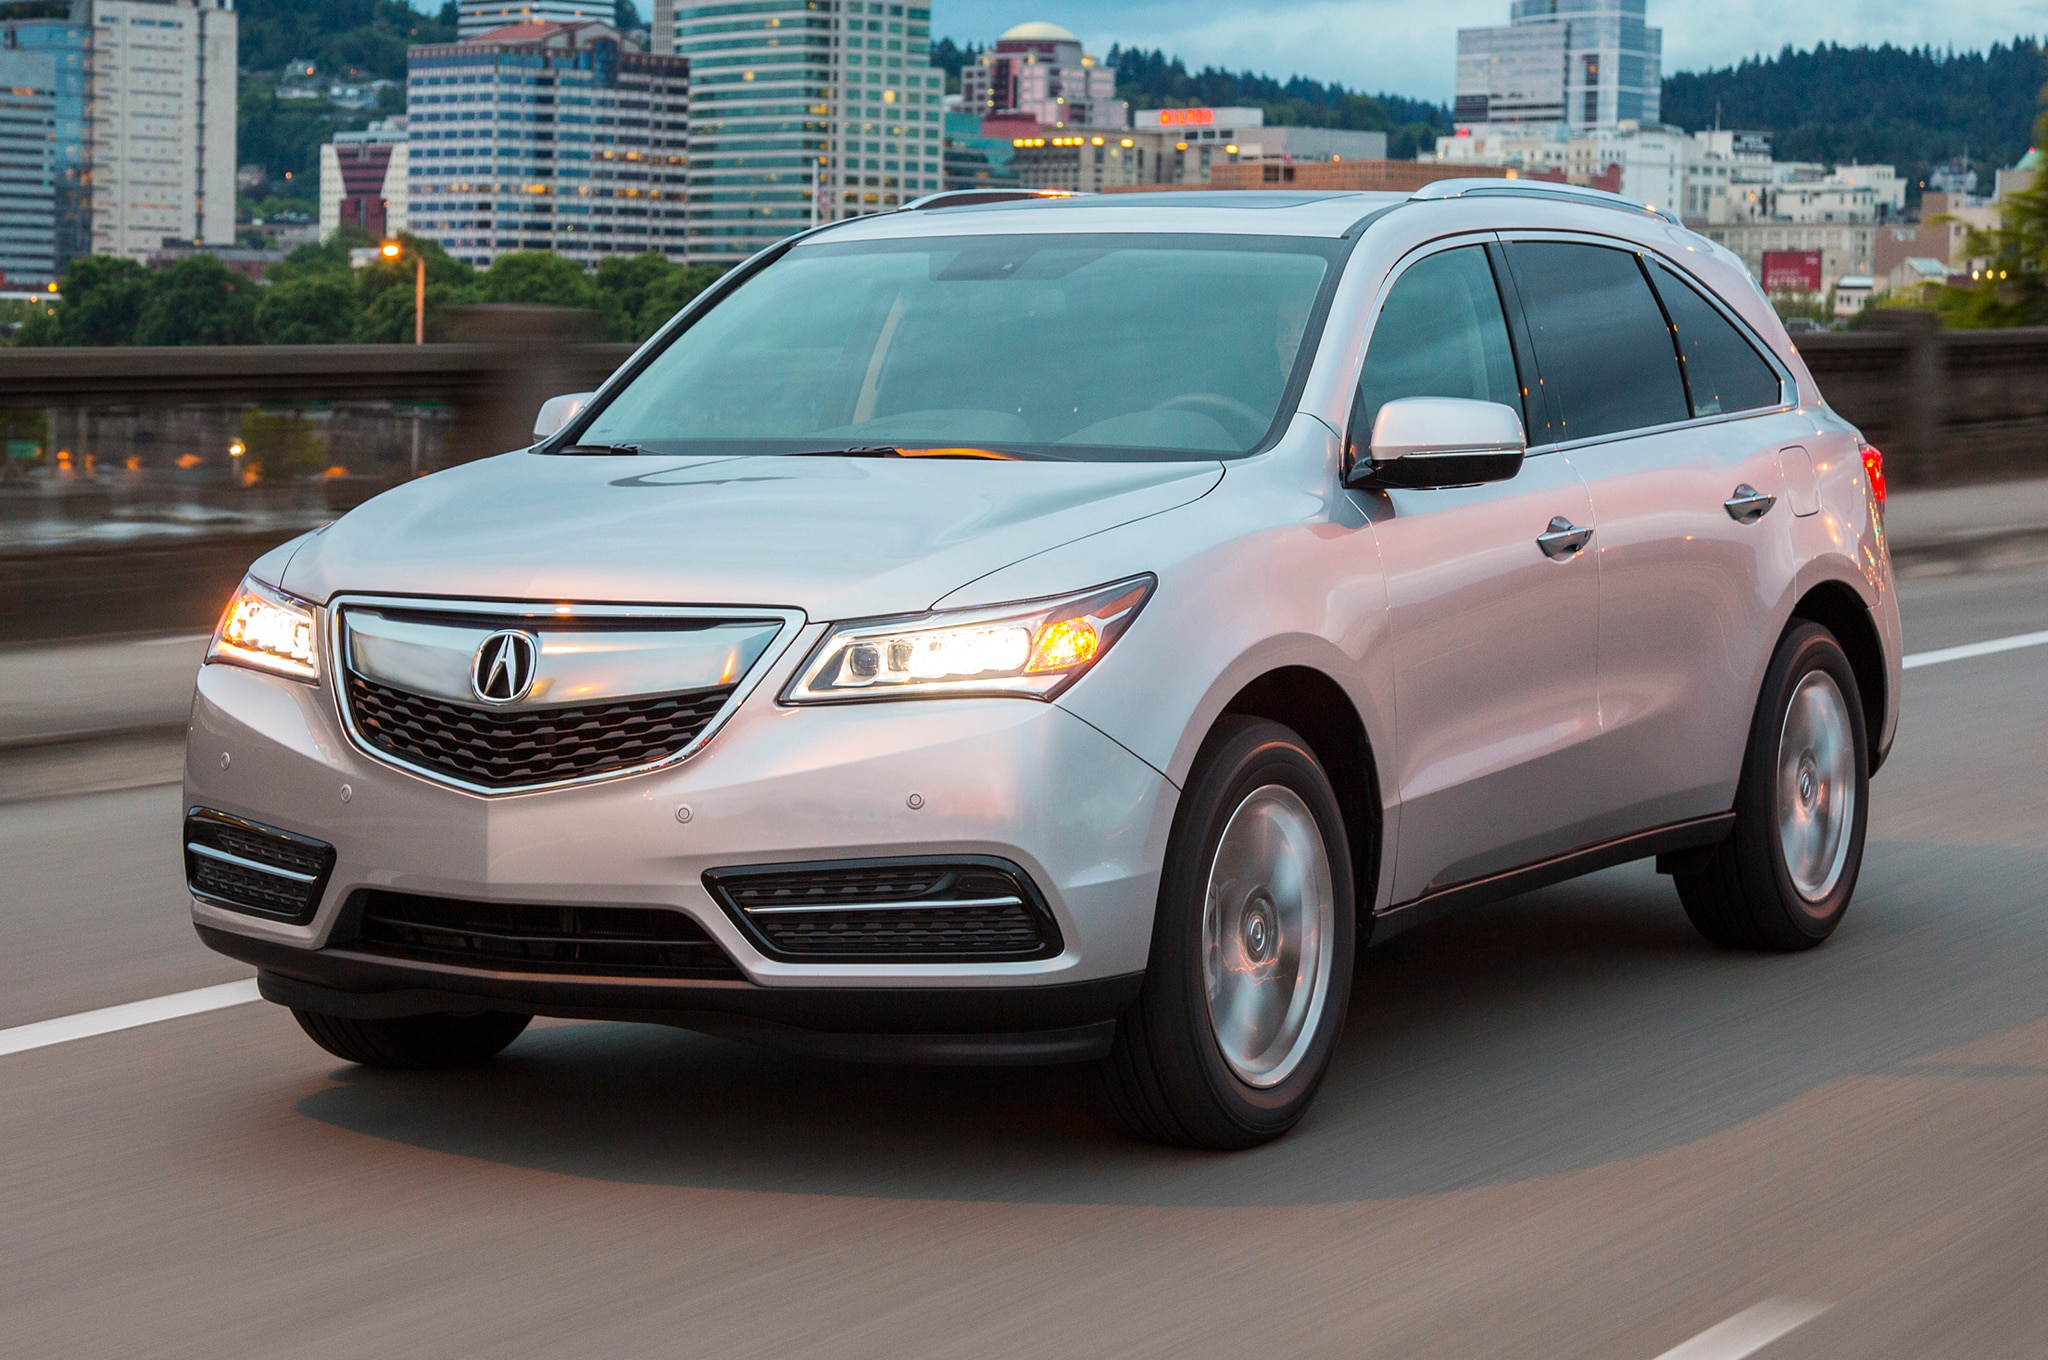 hight resolution of 2016 acura mdx updated with nine speed automatic new tech features pin 2002 acura mdx engine diagram on pinterest